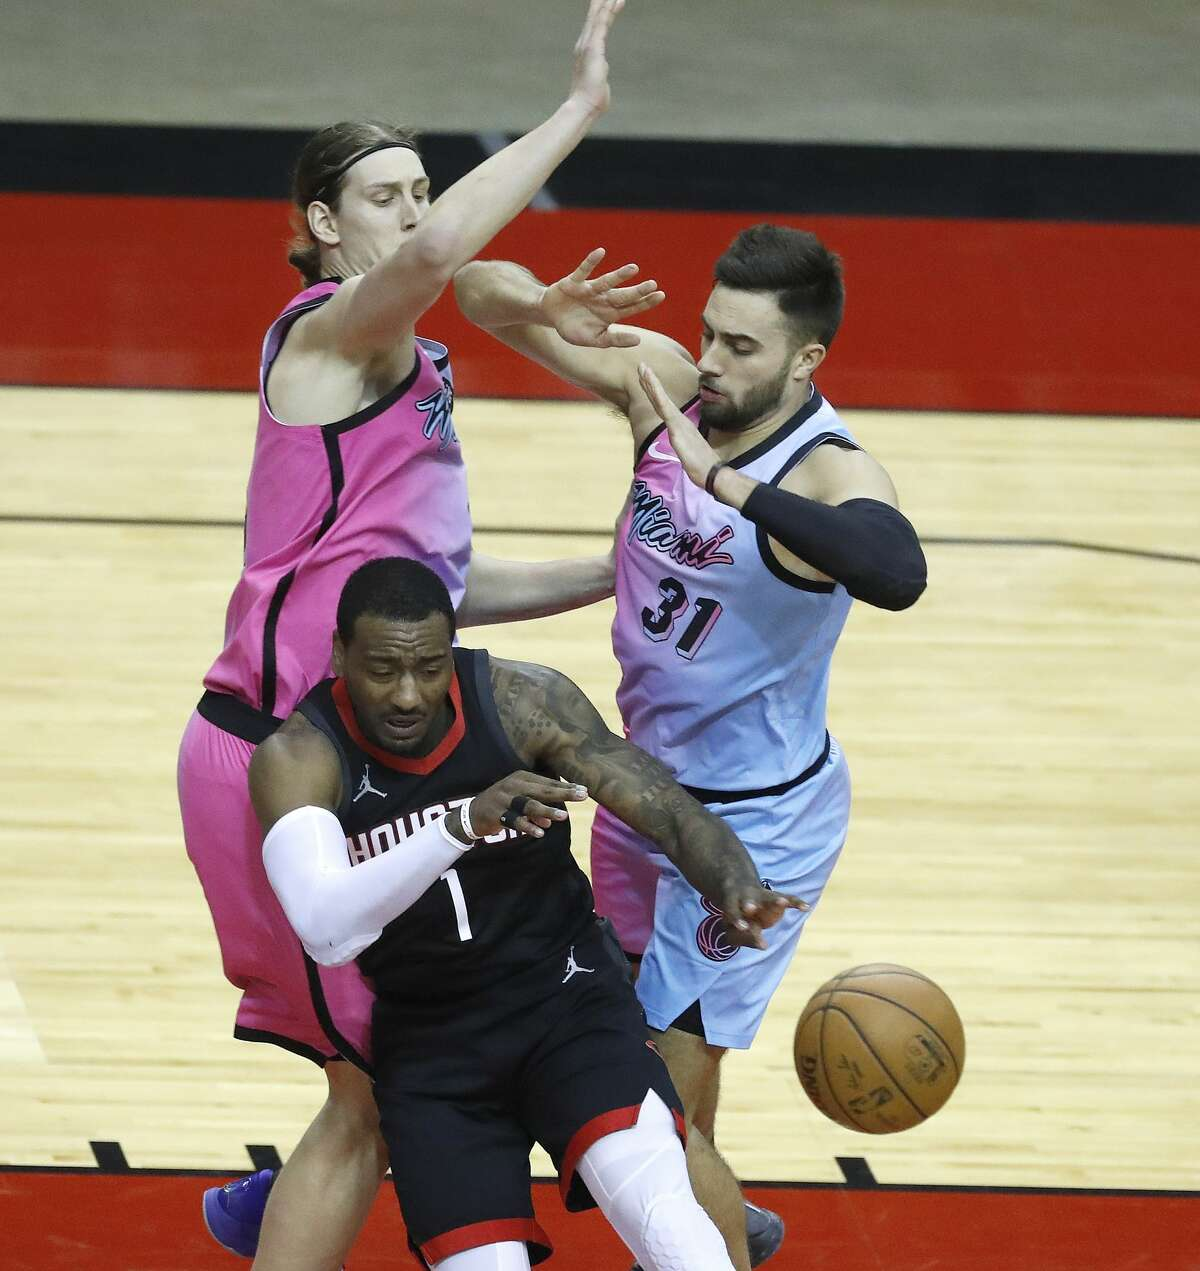 Houston Rockets guard John Wall (1) loses control of the ball against Miami Heat forward Kelly Olynyk (9) and guard Max Strus (31) during the fourth quarter of an NBA basketball game at Toyota Center, in Houston, Thursday, February 11, 2021.